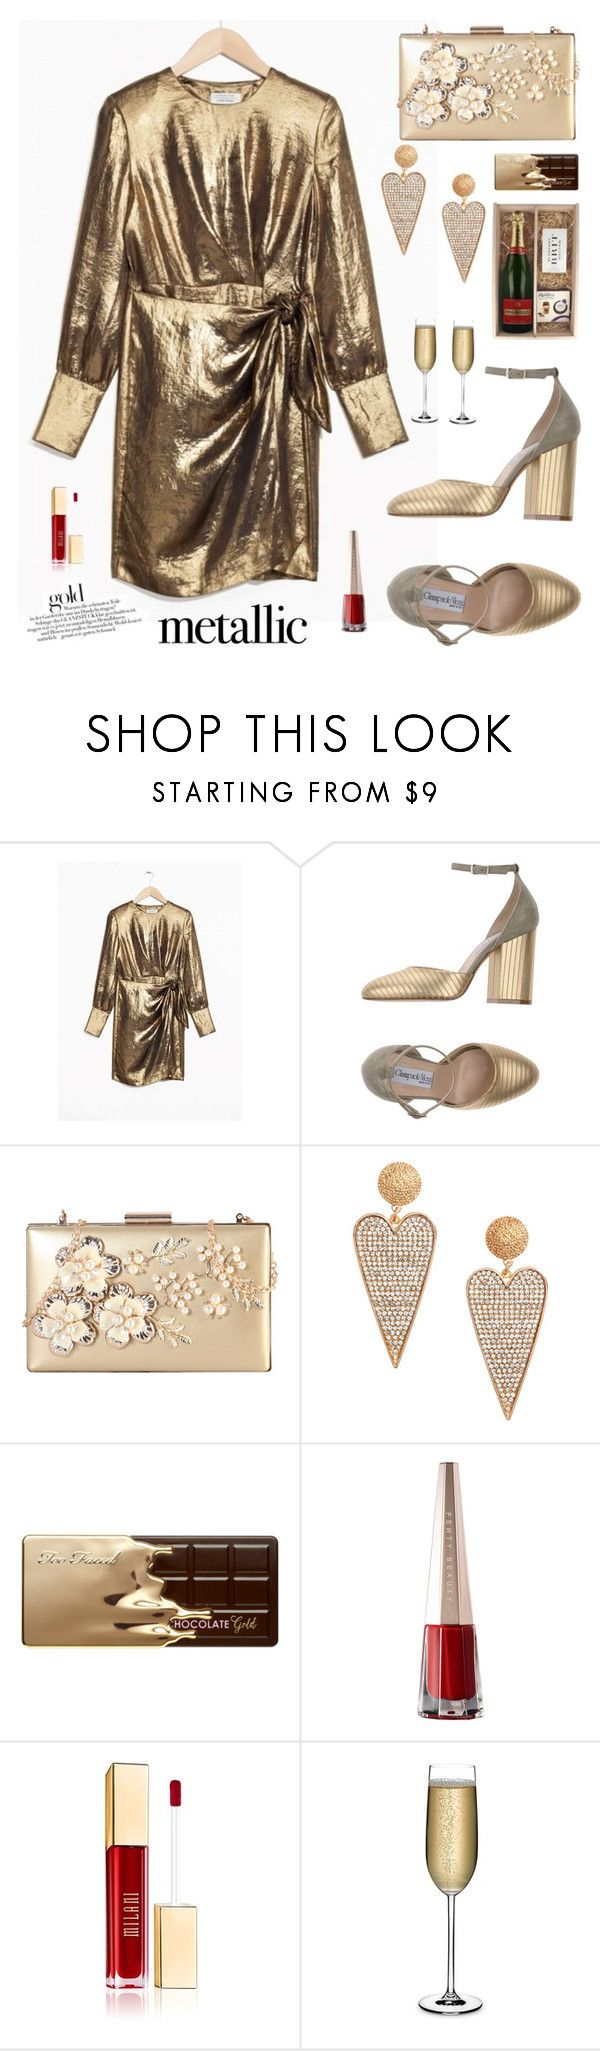 """How To Dress For Christmas Party Season"" by hamaly ❤ liked on Polyvore featuring Giampaolo Viozzi, Rimen & Co., H&M, Too Faced Cosmetics, Nude, Piper-Heidsieck, Christmas, outfit, ootd and metallicdress"